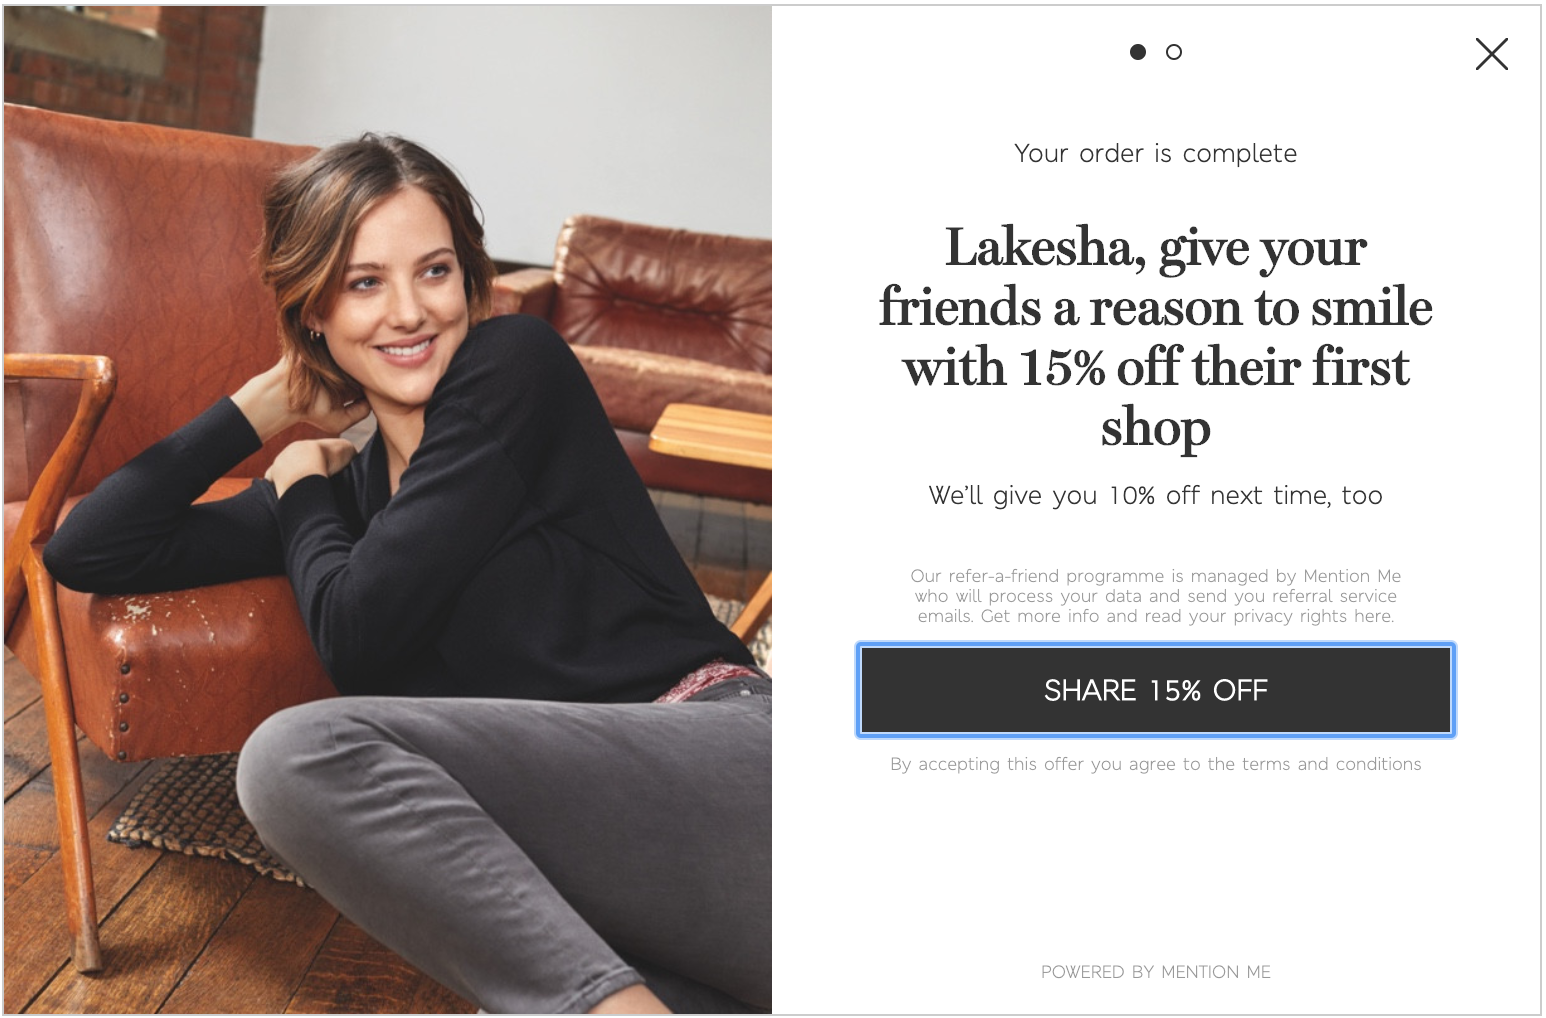 Marks & Spencer refer-a-friend campaign